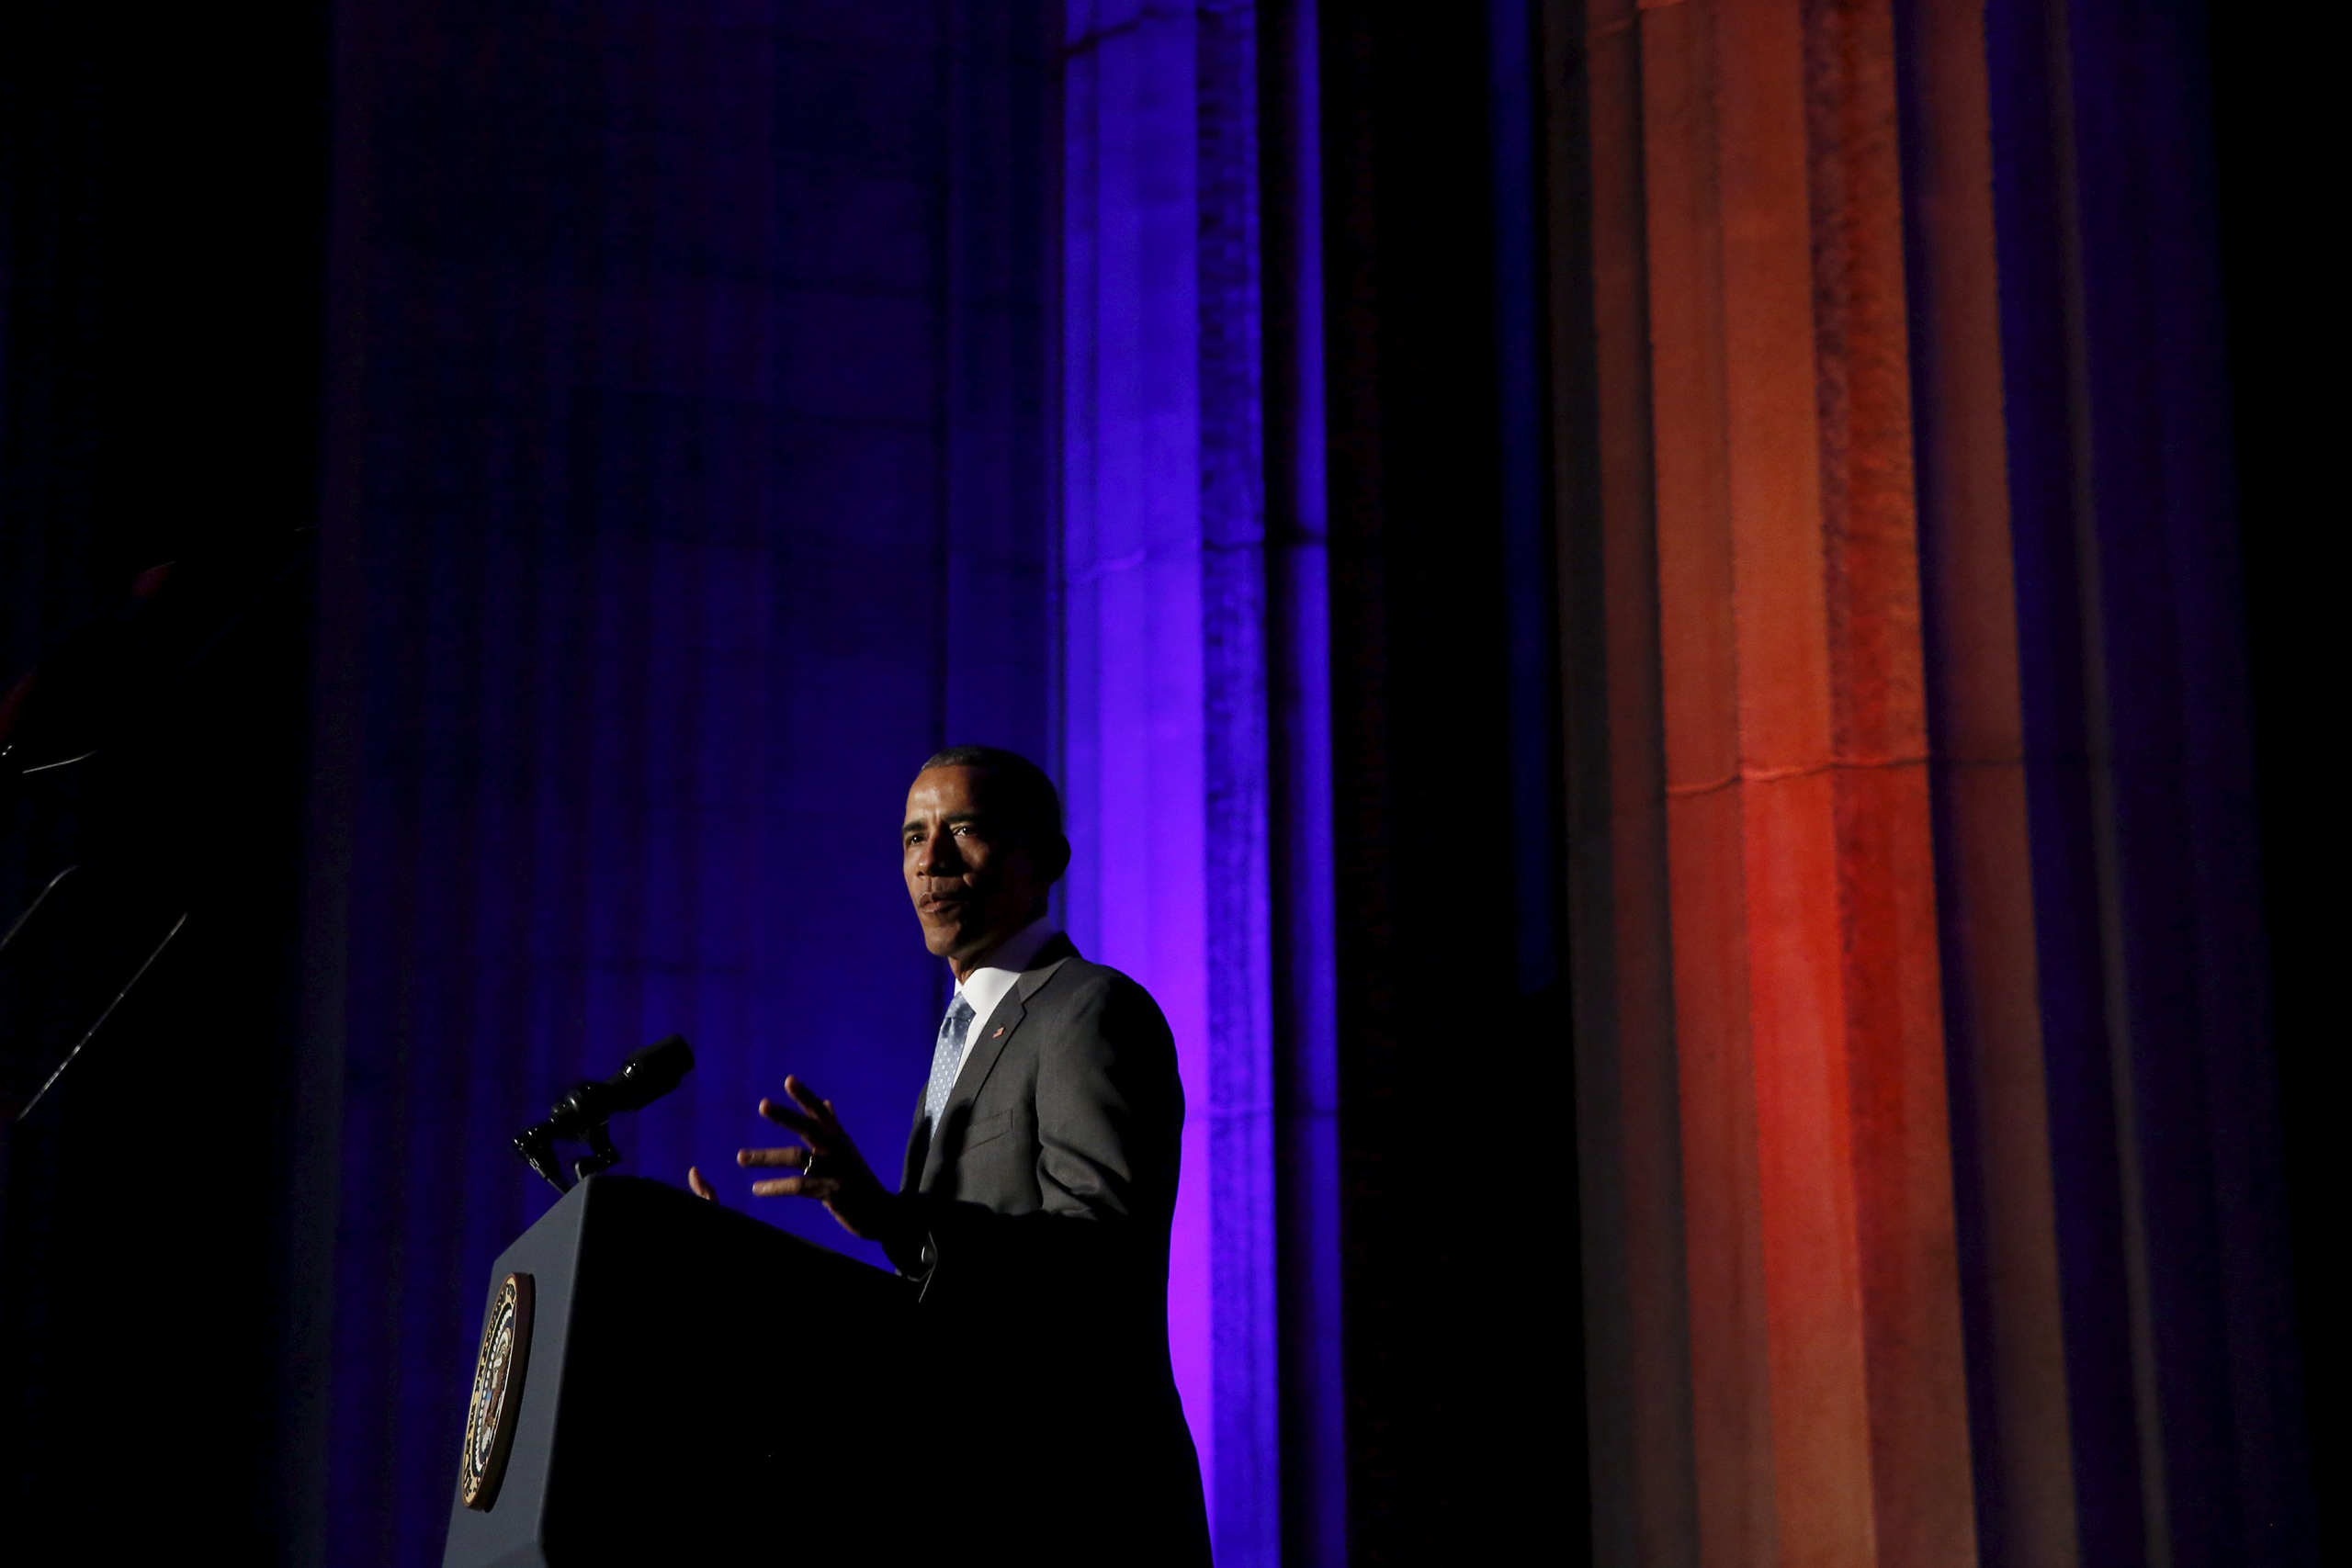 President Barack Obama delivers the keynote address at the awards dinner for Syracuse University's Toner Prize for Excellence in Political Reporting at the Andrew W. Mellon Auditorium in Washington on March 28, 2016.